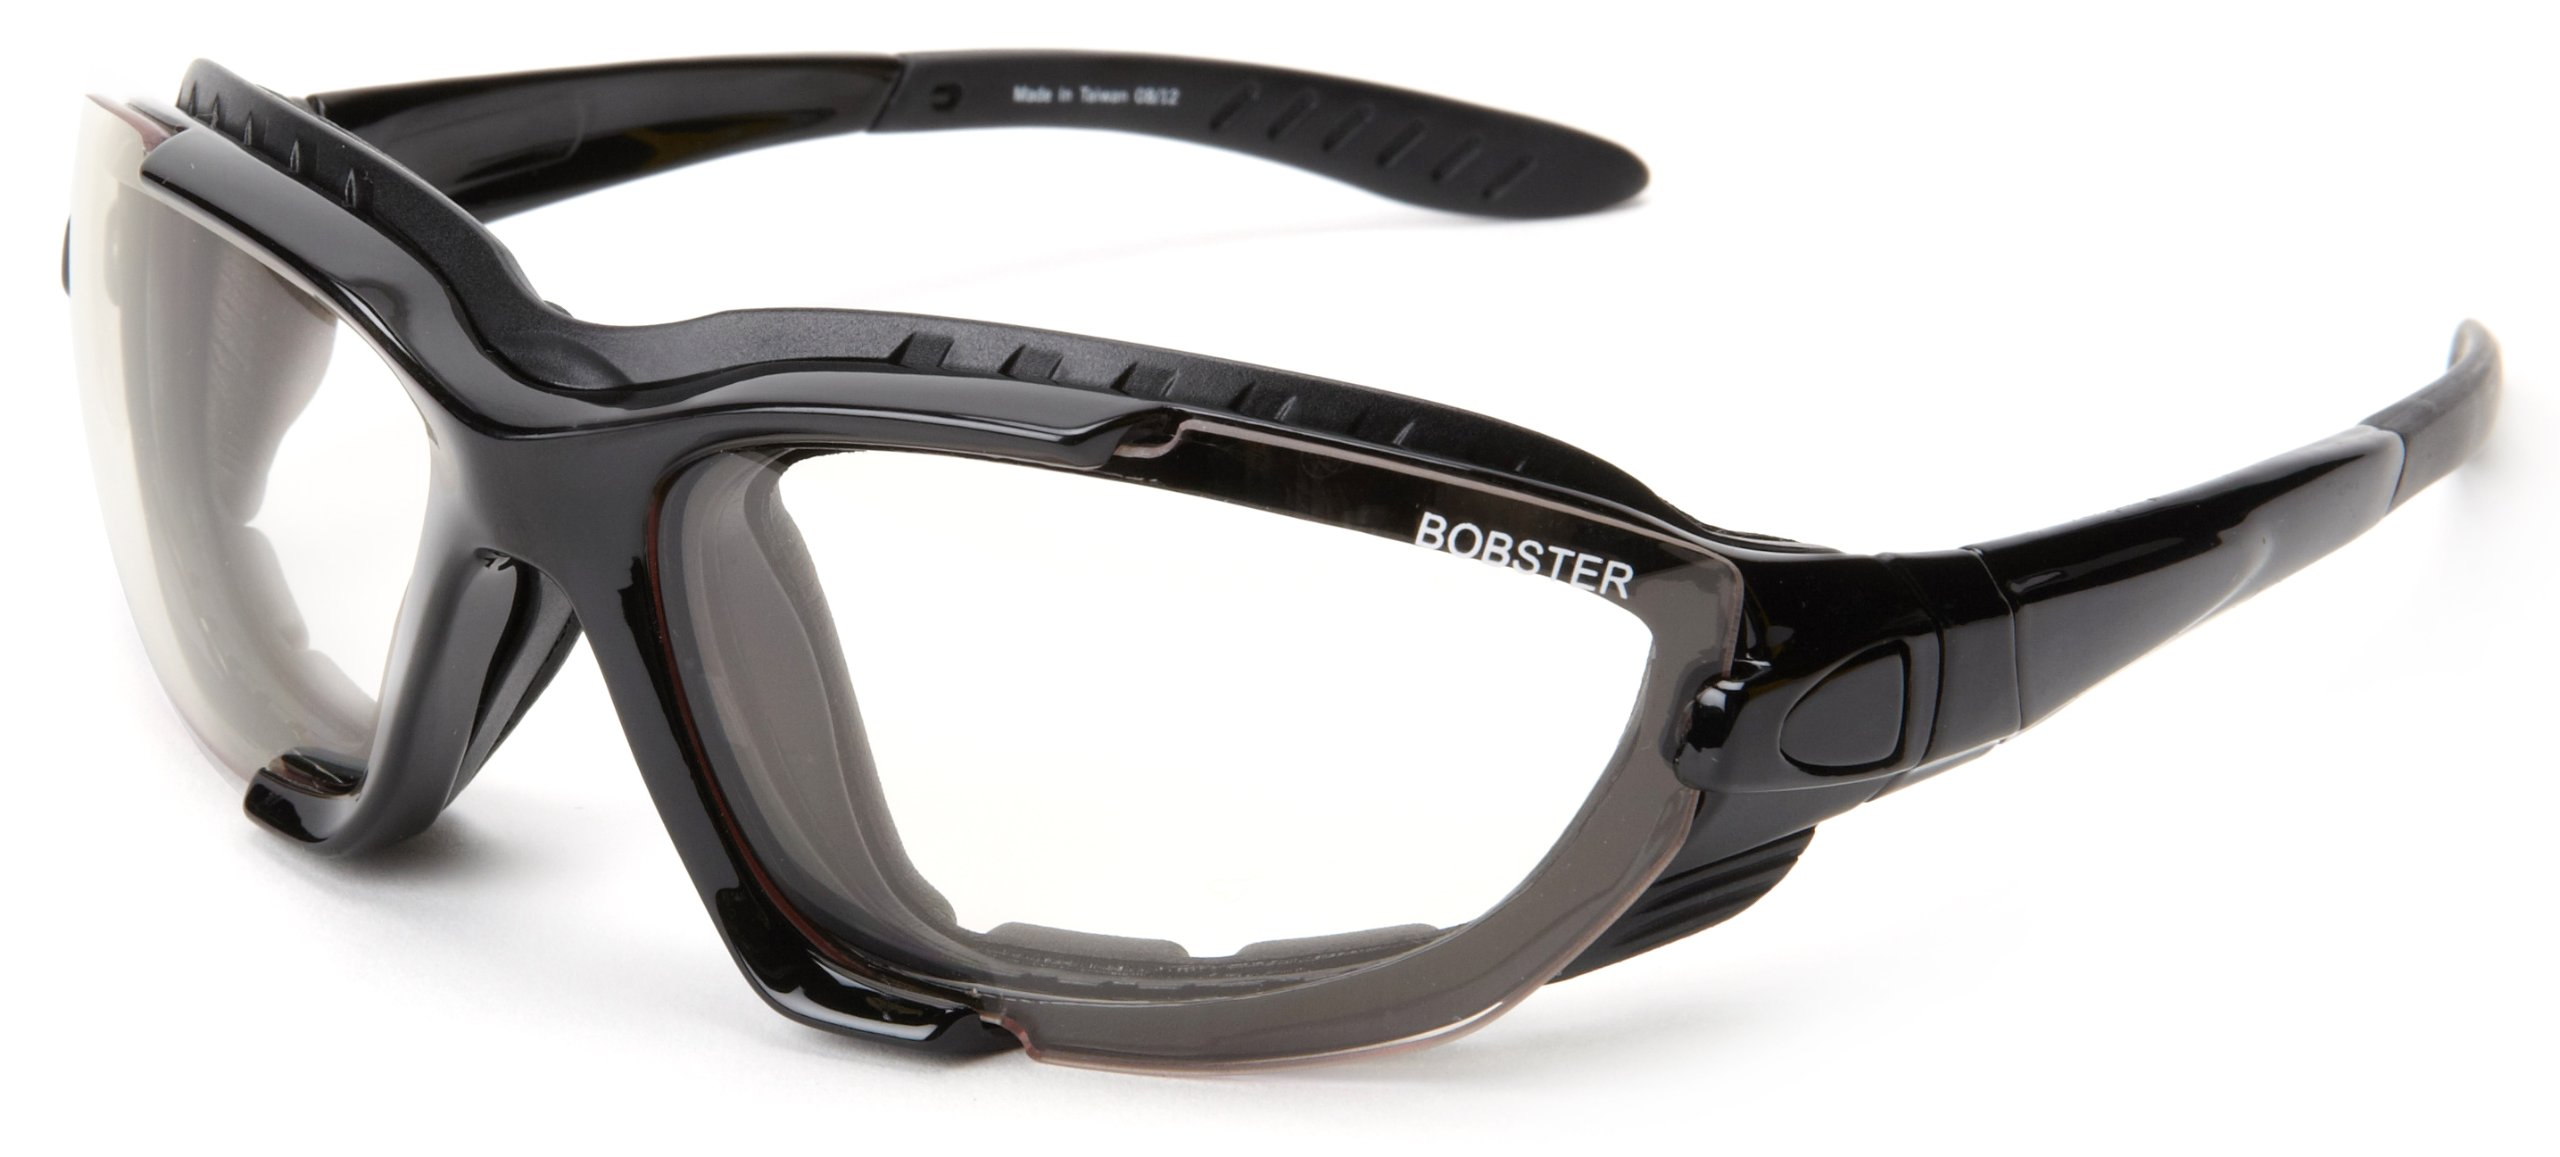 Lunettes moto photochromiques Bobster Renegade 2